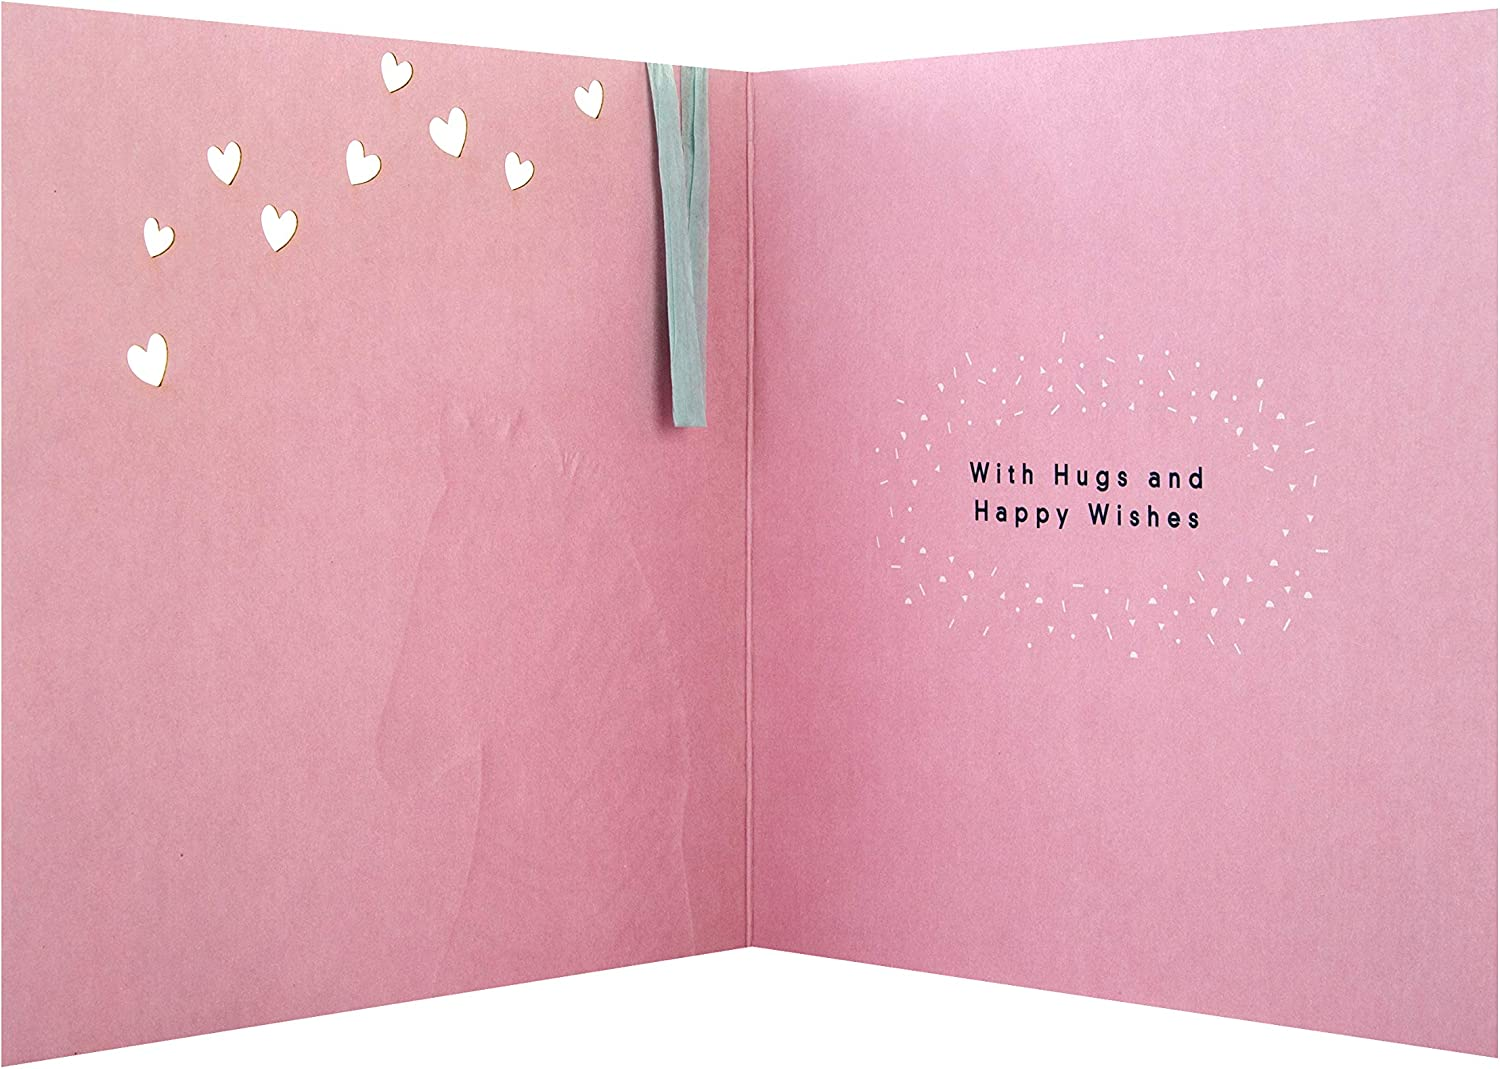 Contemporary Embossed Design 100/% Recyclable Mothers Day Card from Hallmark